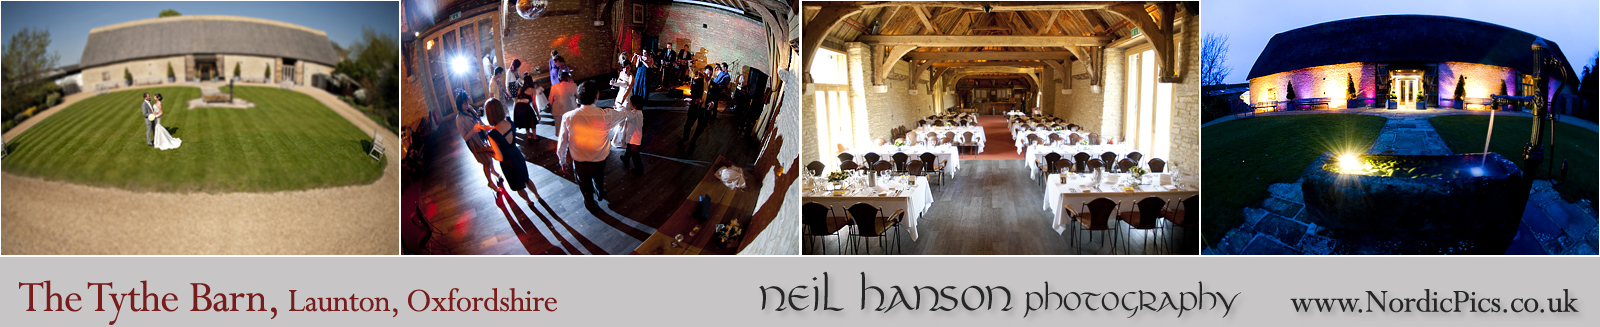 Neil Hanson photography provides contemporary wedding photography for the Bay Tree Hotel Burford Oxfordshire